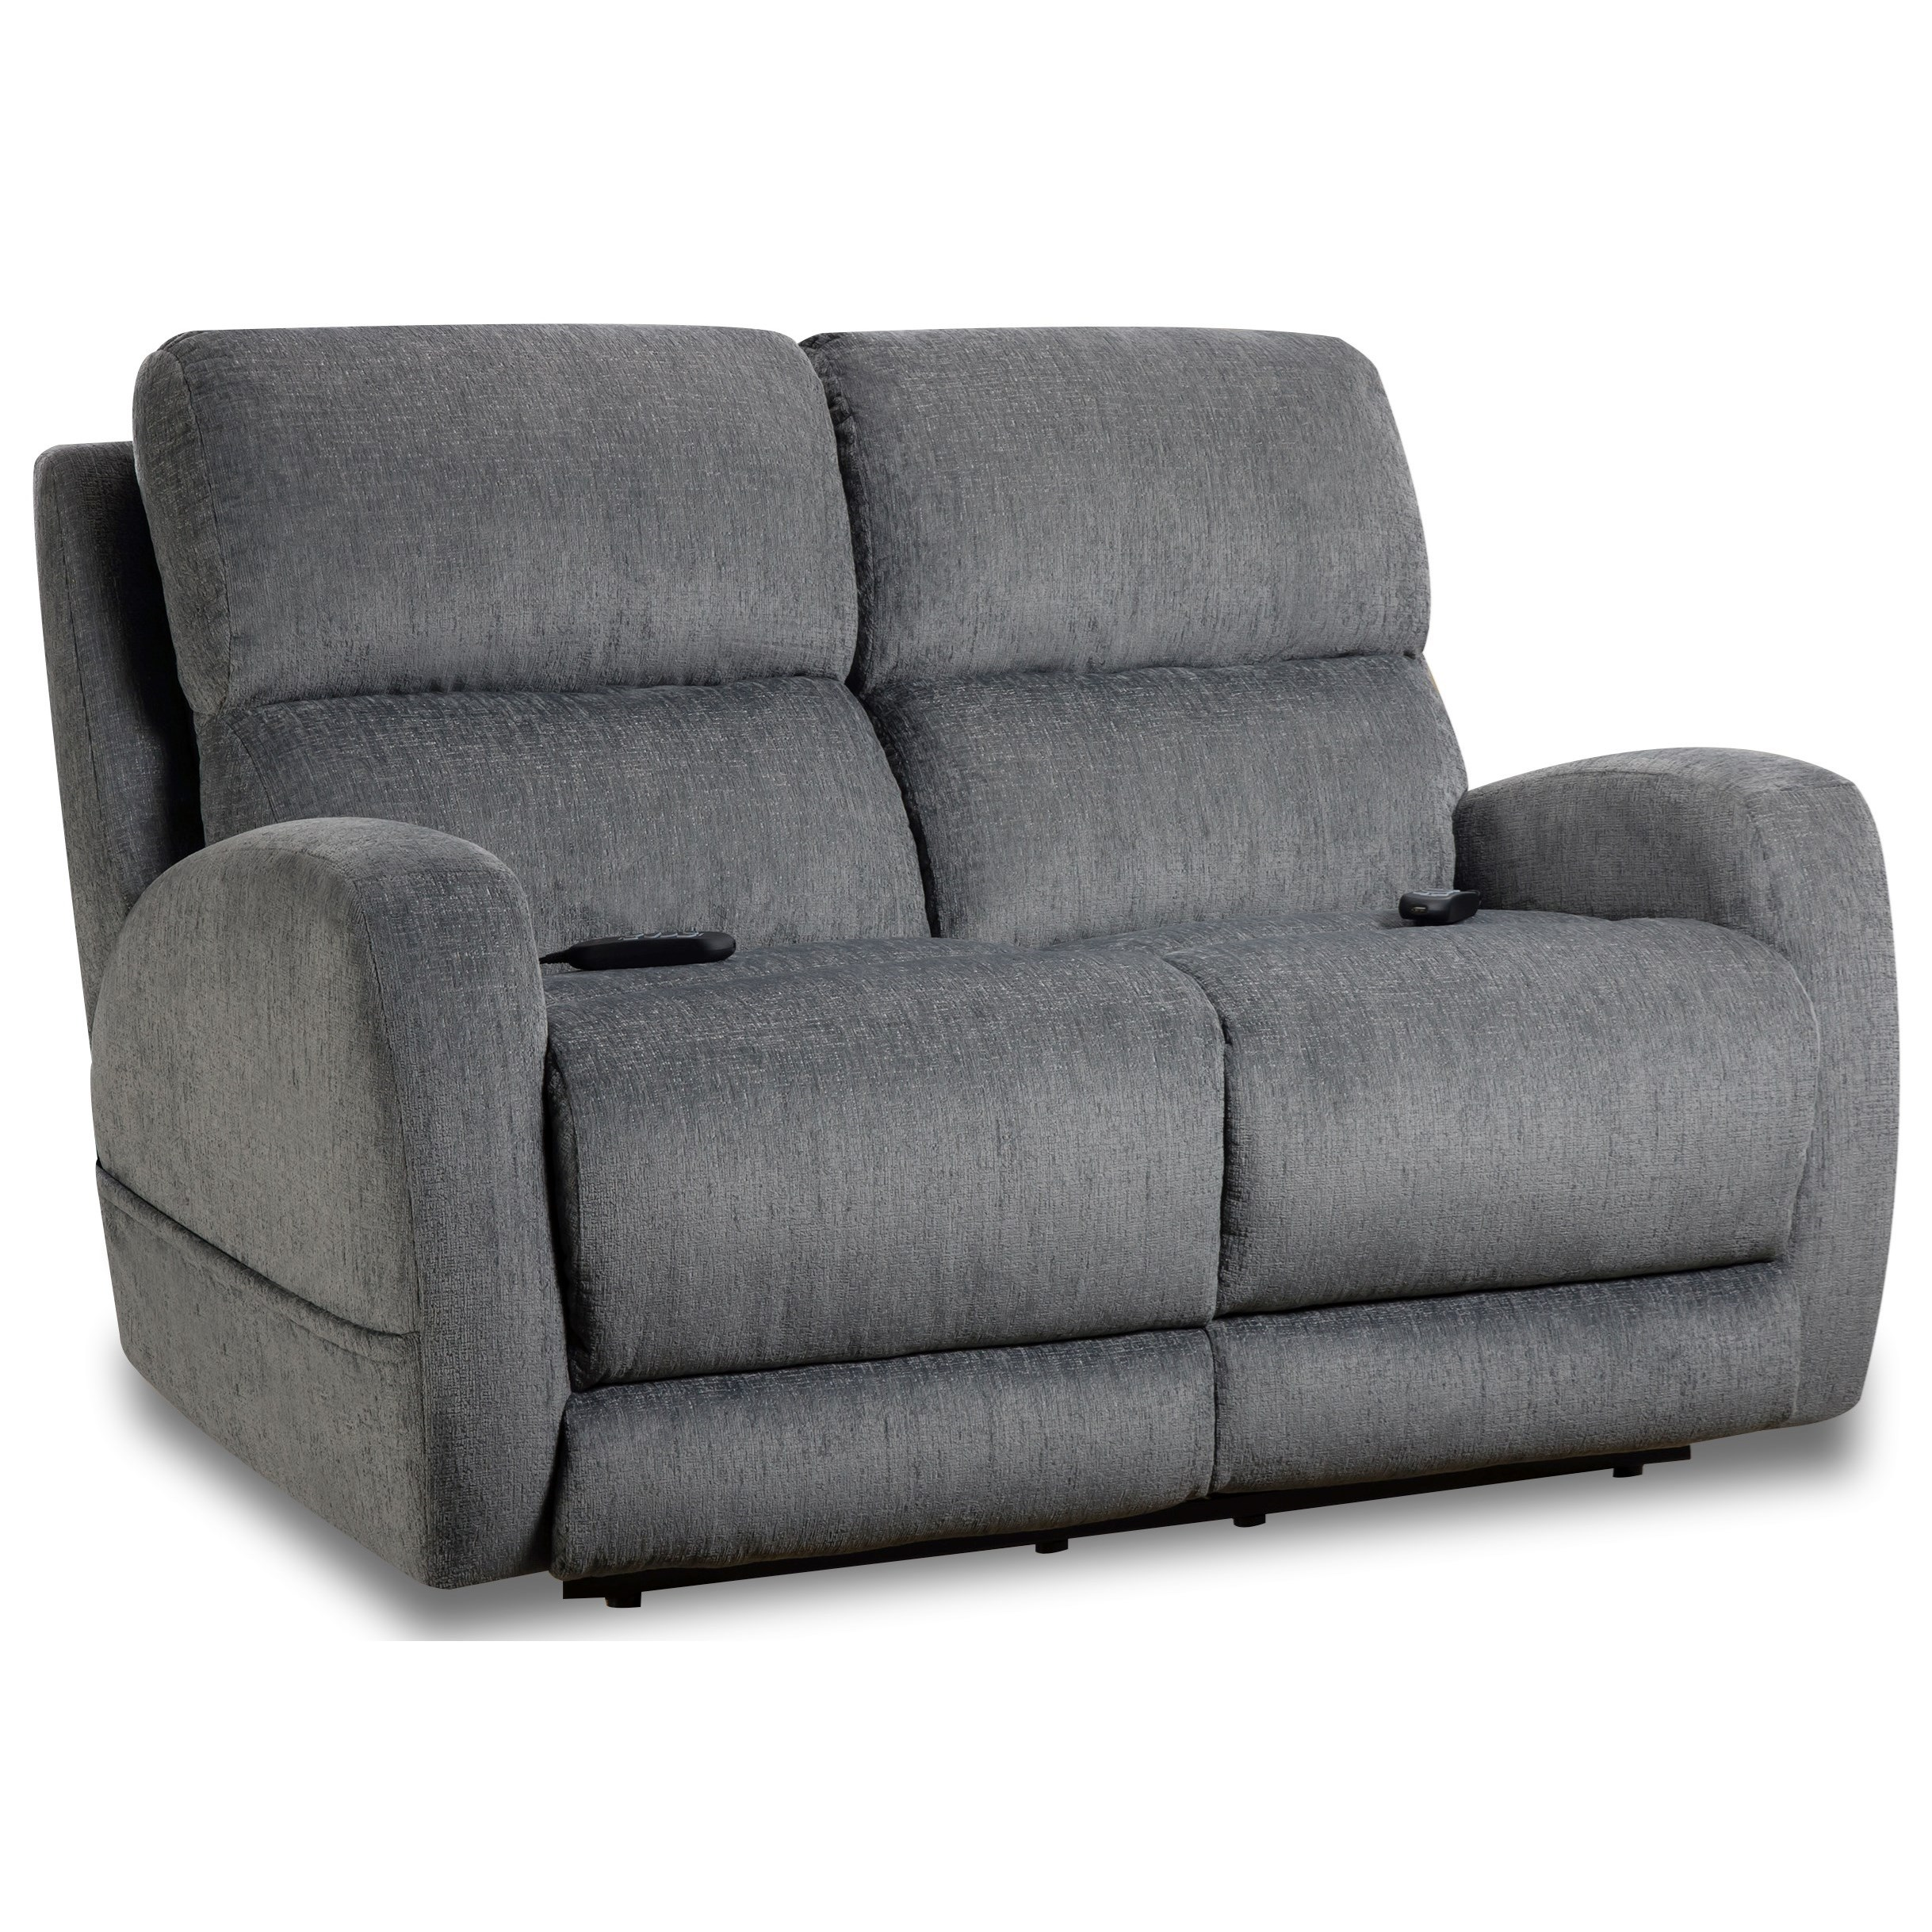 Sterling Power Loveseat by HomeStretch at Darvin Furniture